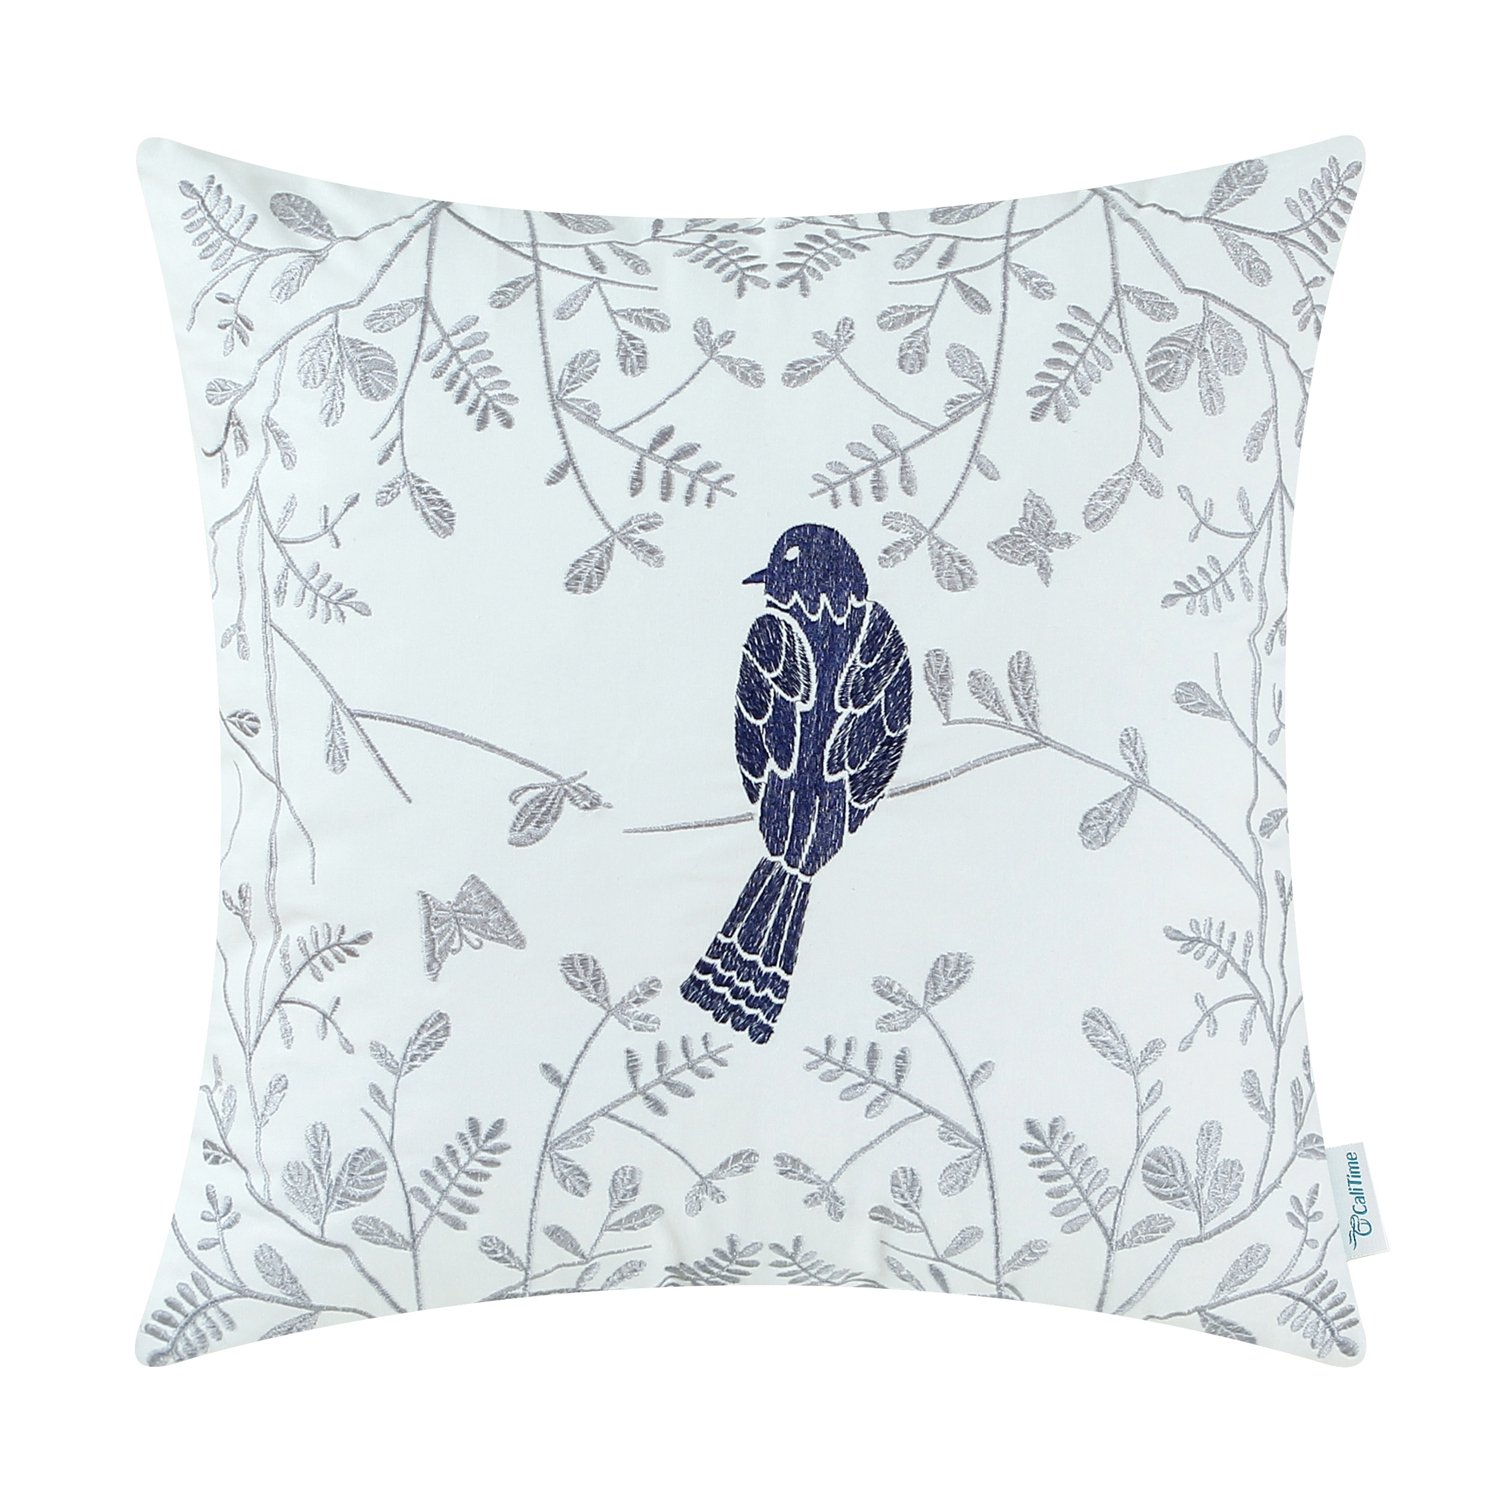 CaliTime Cotton Throw Pillow Case Cover Bed Couch Sofa Cute Bird in Gray Garden Embroidered 18 X 18 Inches Turquoise Qingdao PT Trading Co. Ltd. DSC0337G